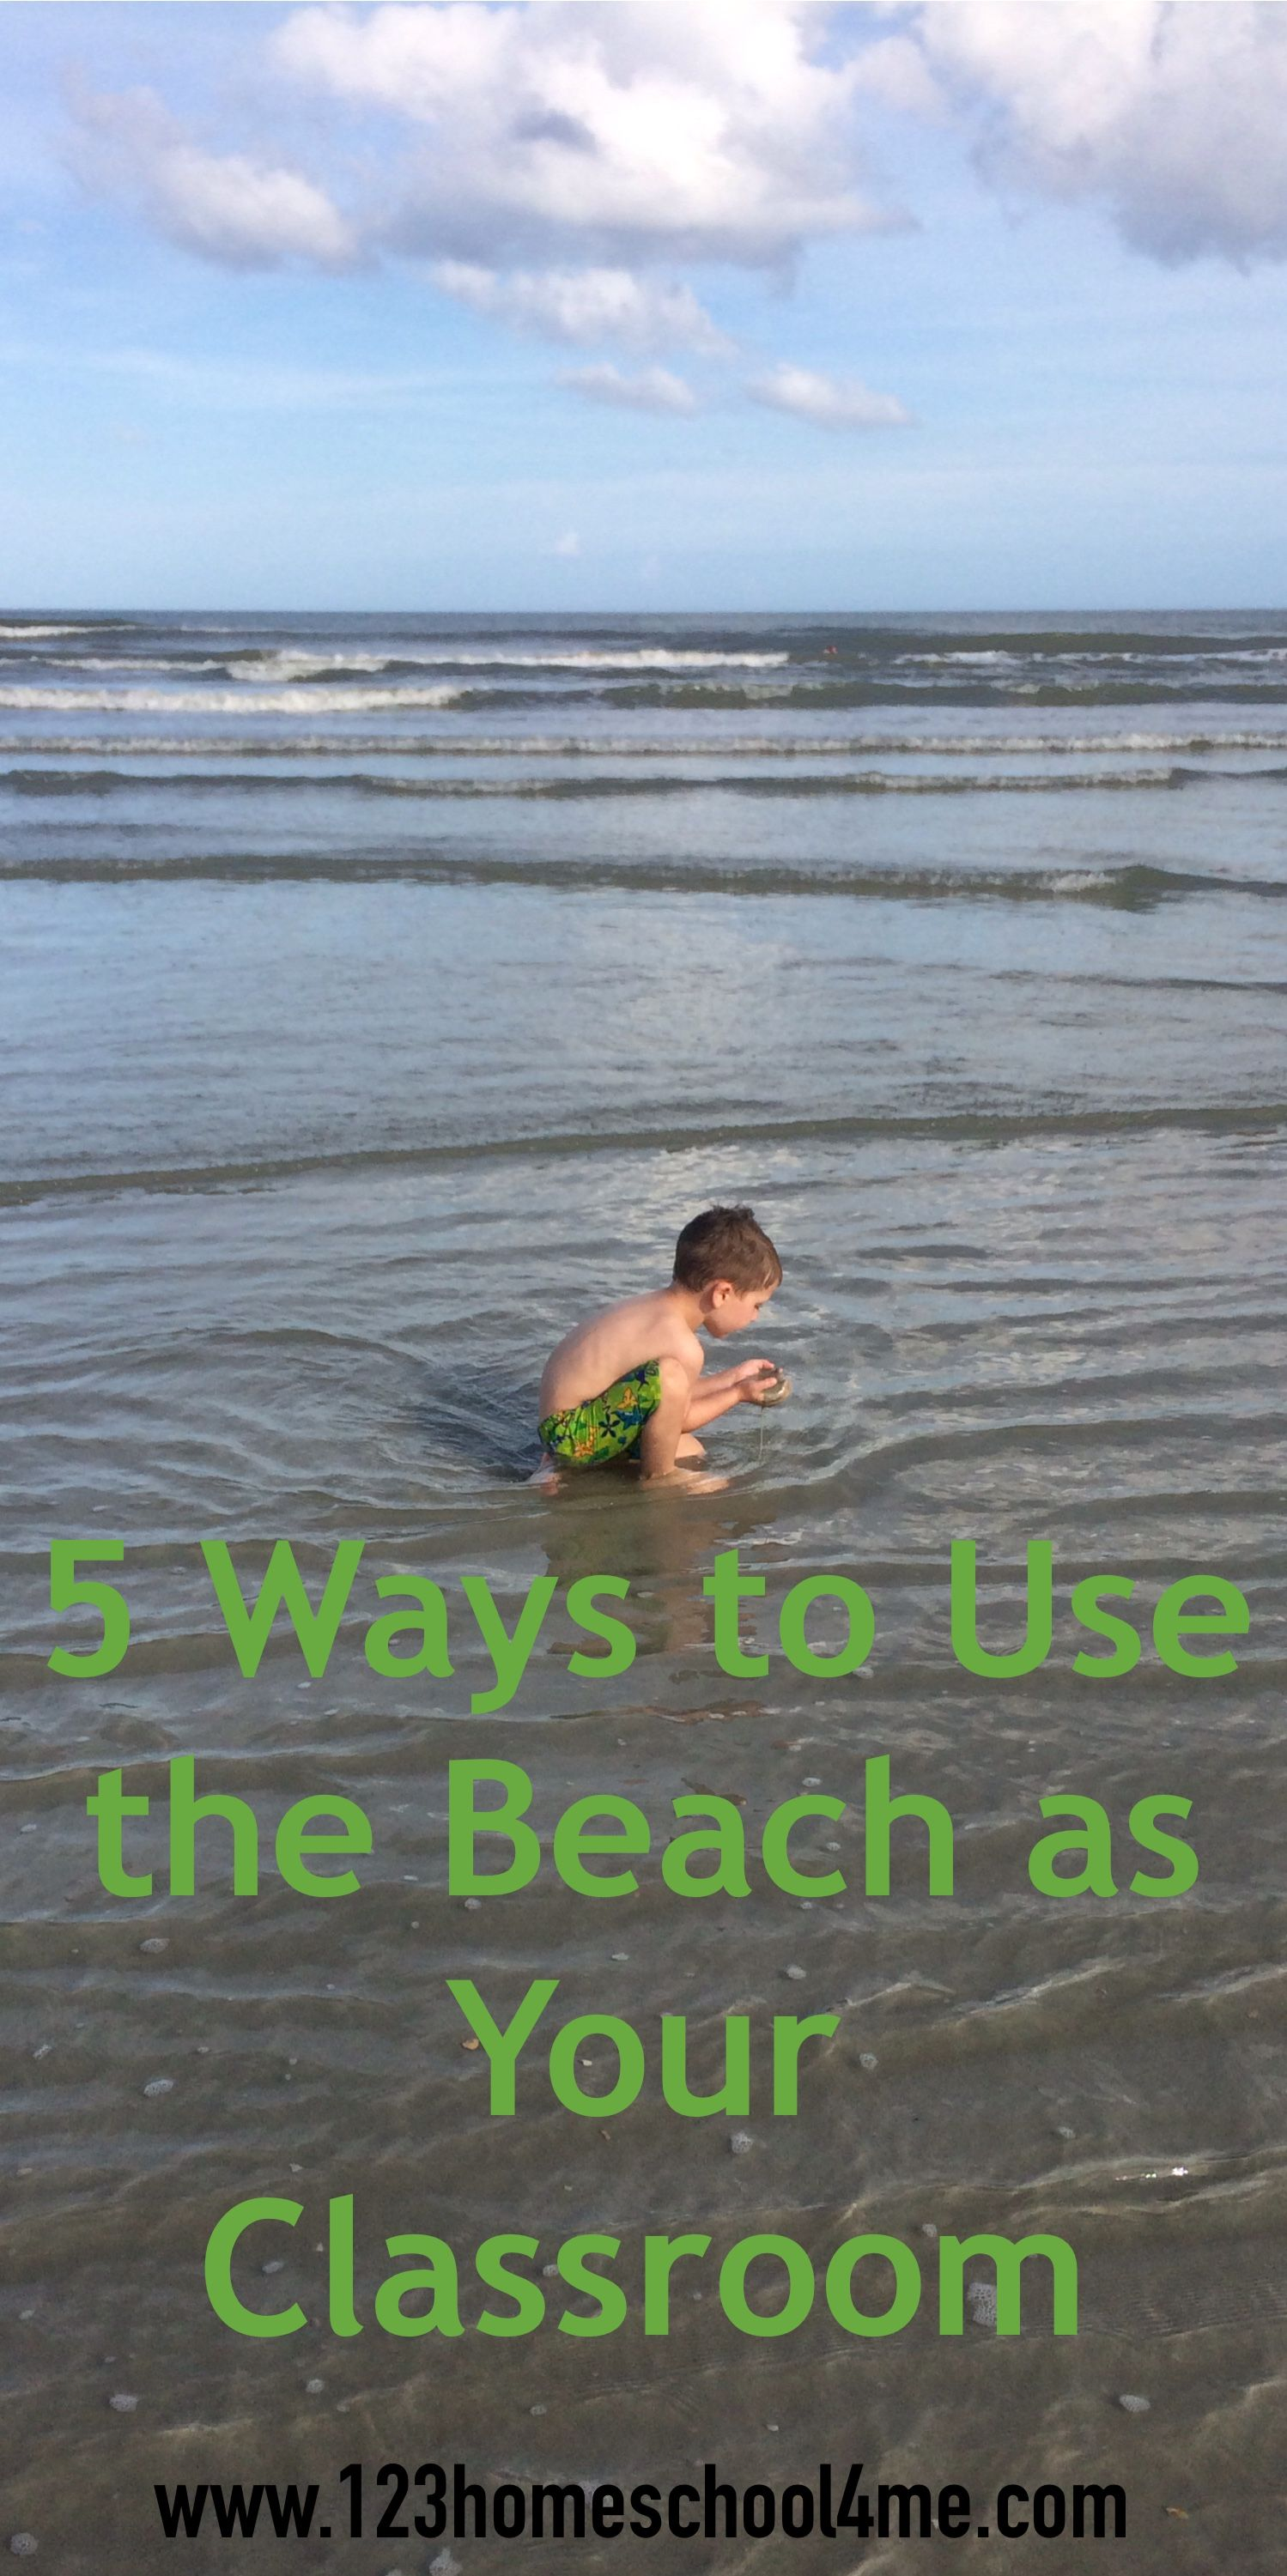 5 Ways To Use The Beach As Your Classroom